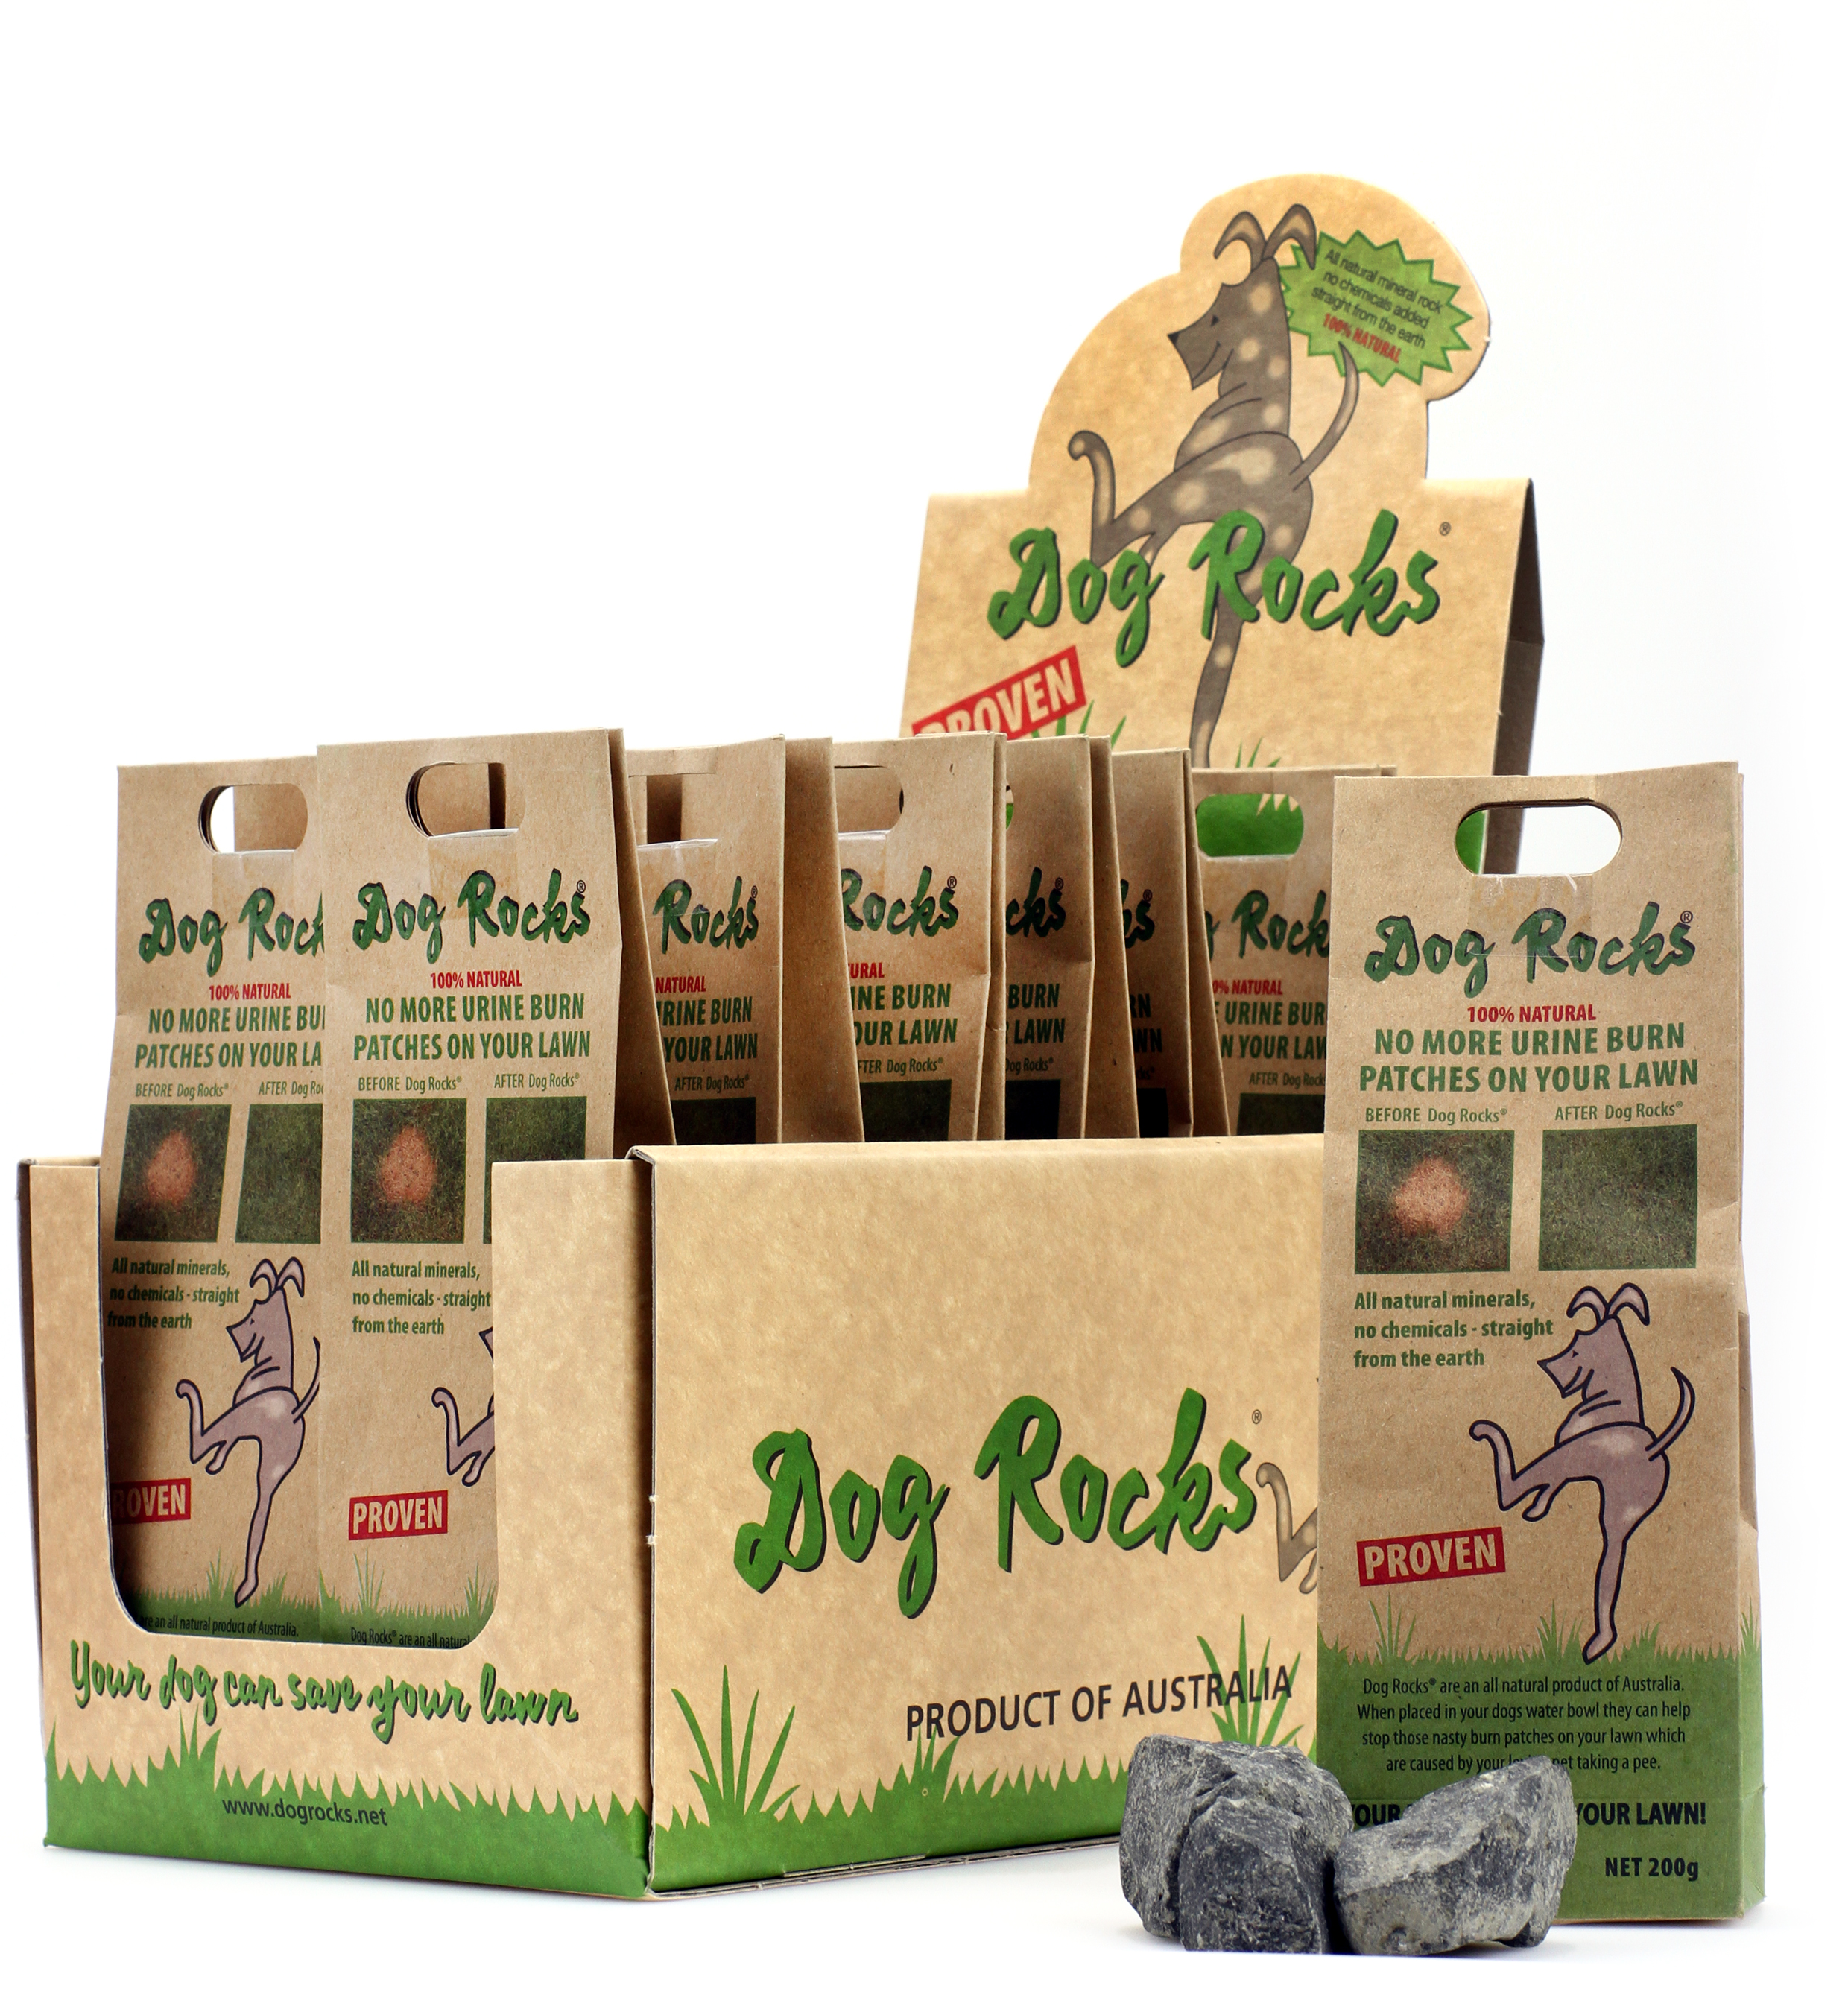 Lawn Protecting Dog Rocks